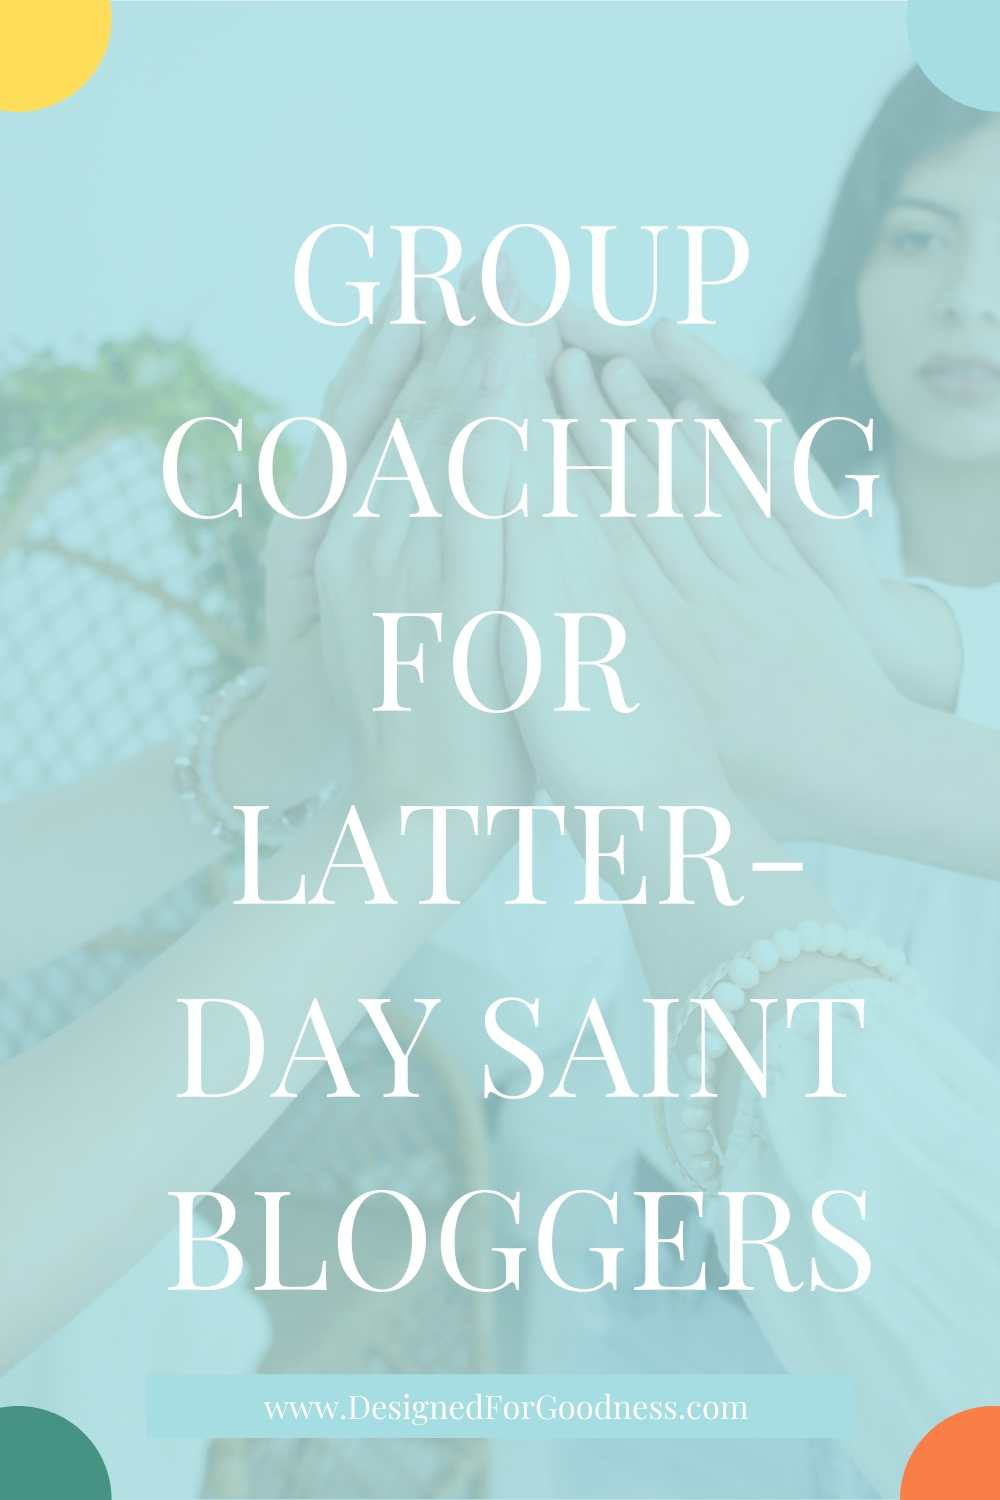 Affordable ($5 per month) blog coaching for Latter-Day Saint bloggers who are sick of spinning their wheels and wasting time and money on their blogs.